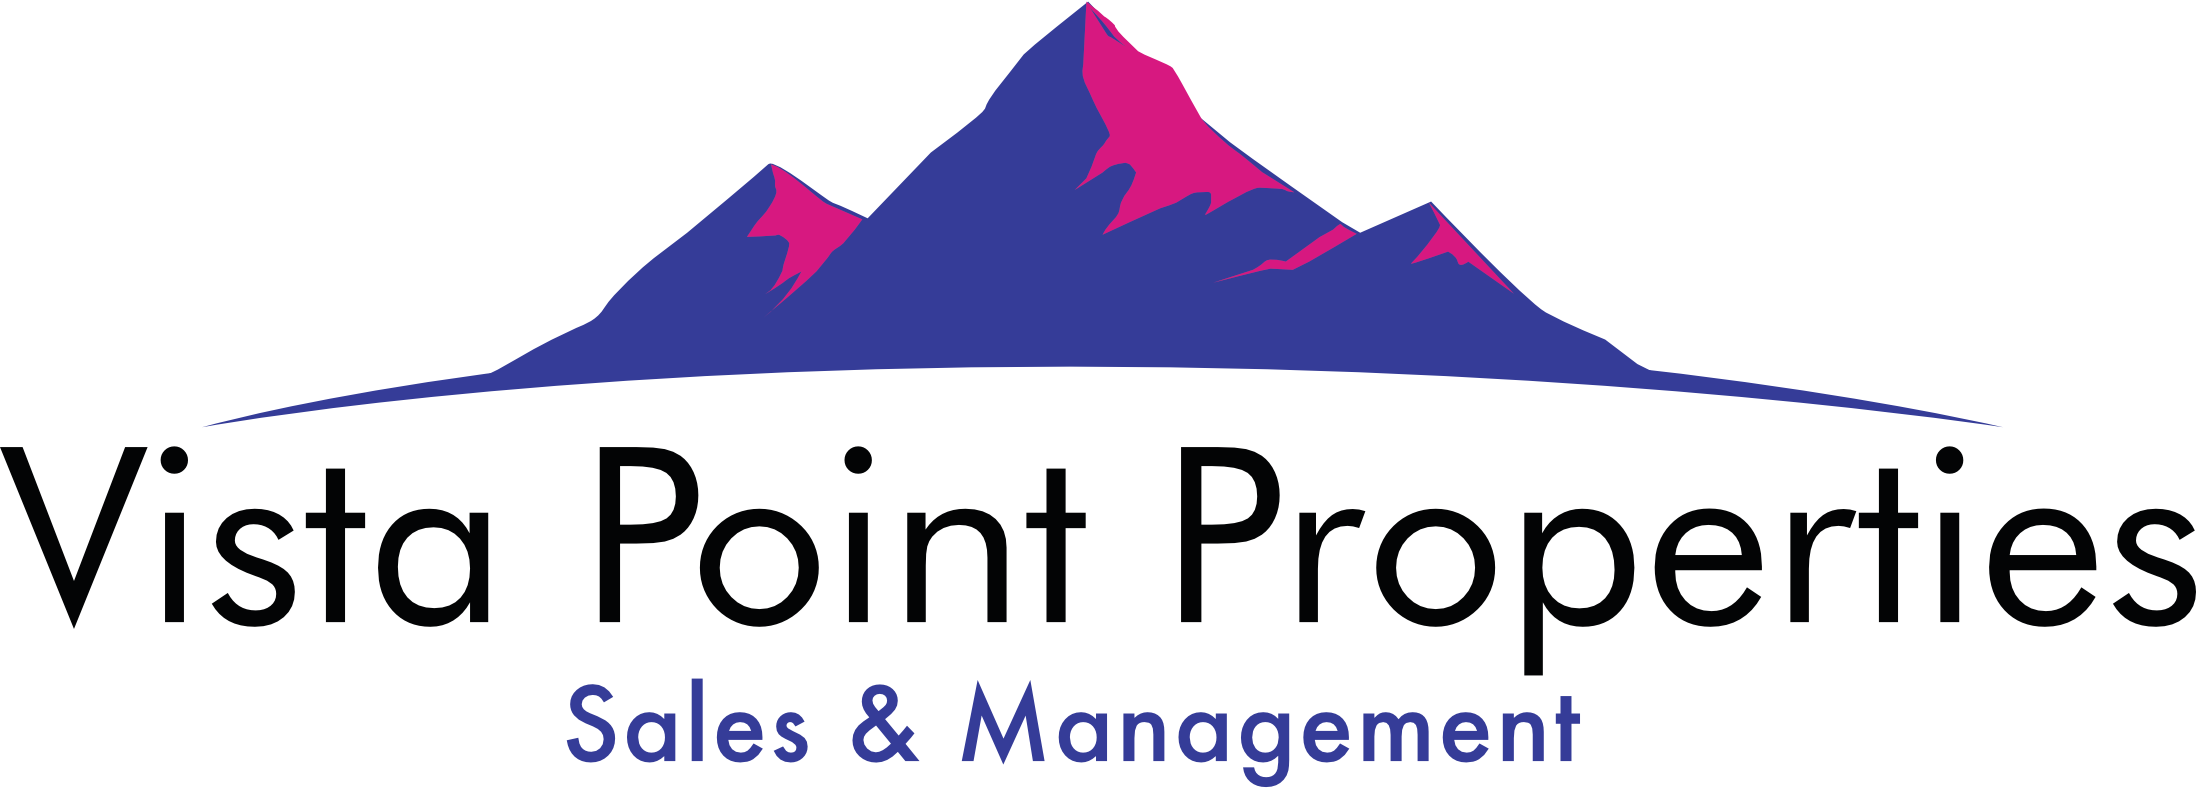 Vista Point Properties | Tucson Property Management | Vista Point Properties